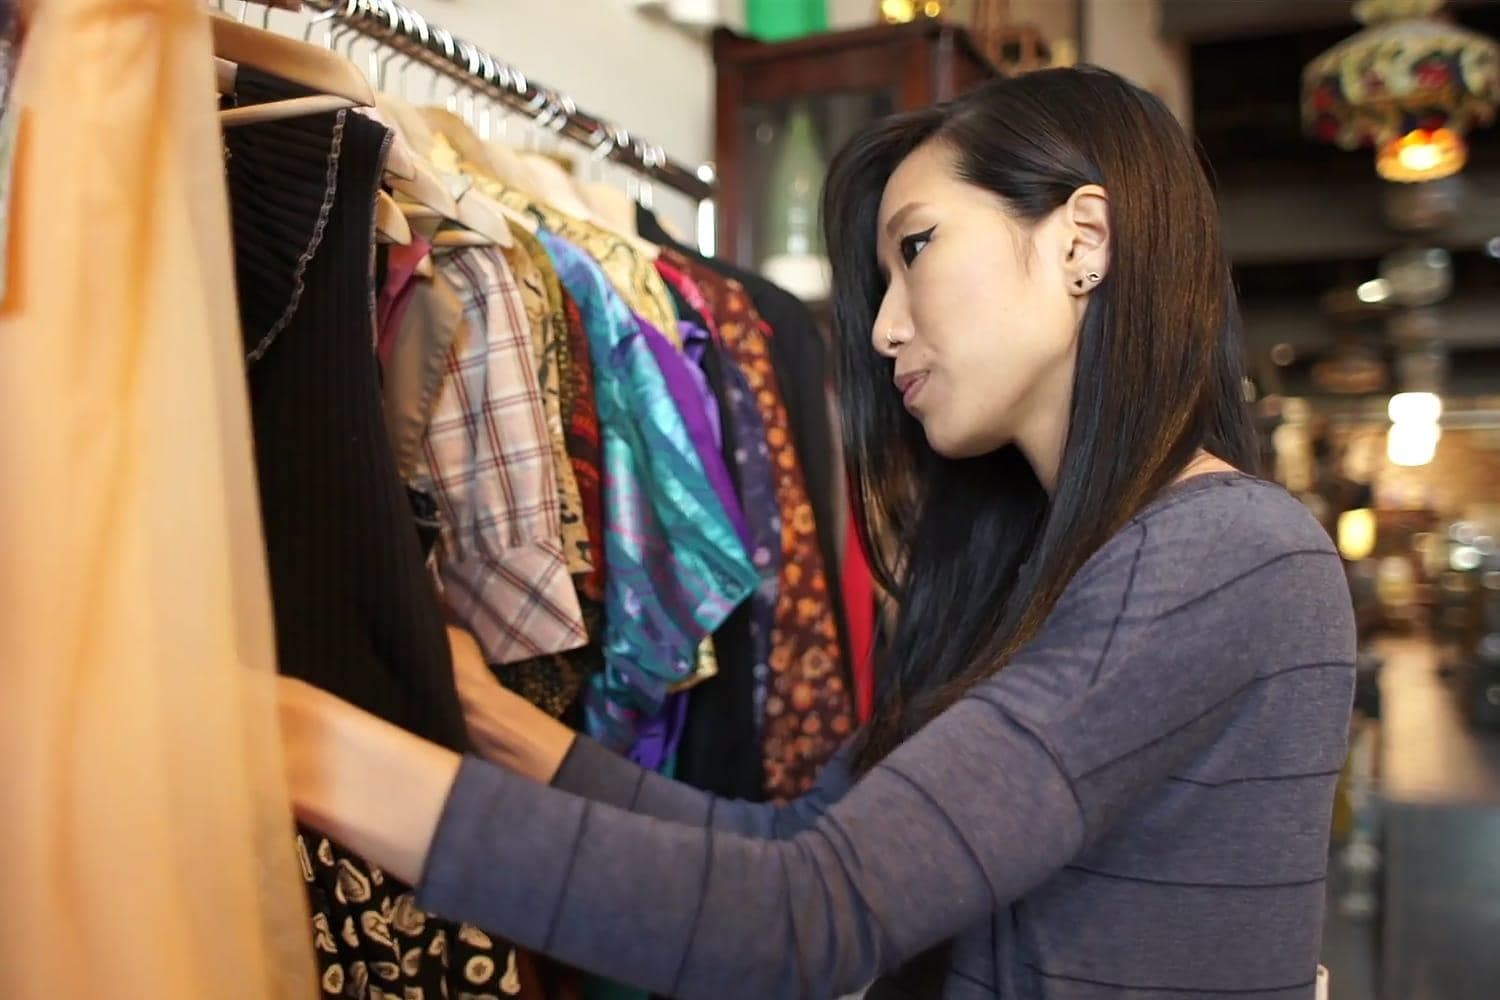 SAS Retail Analytics video still - young woman shopping at boutique shop